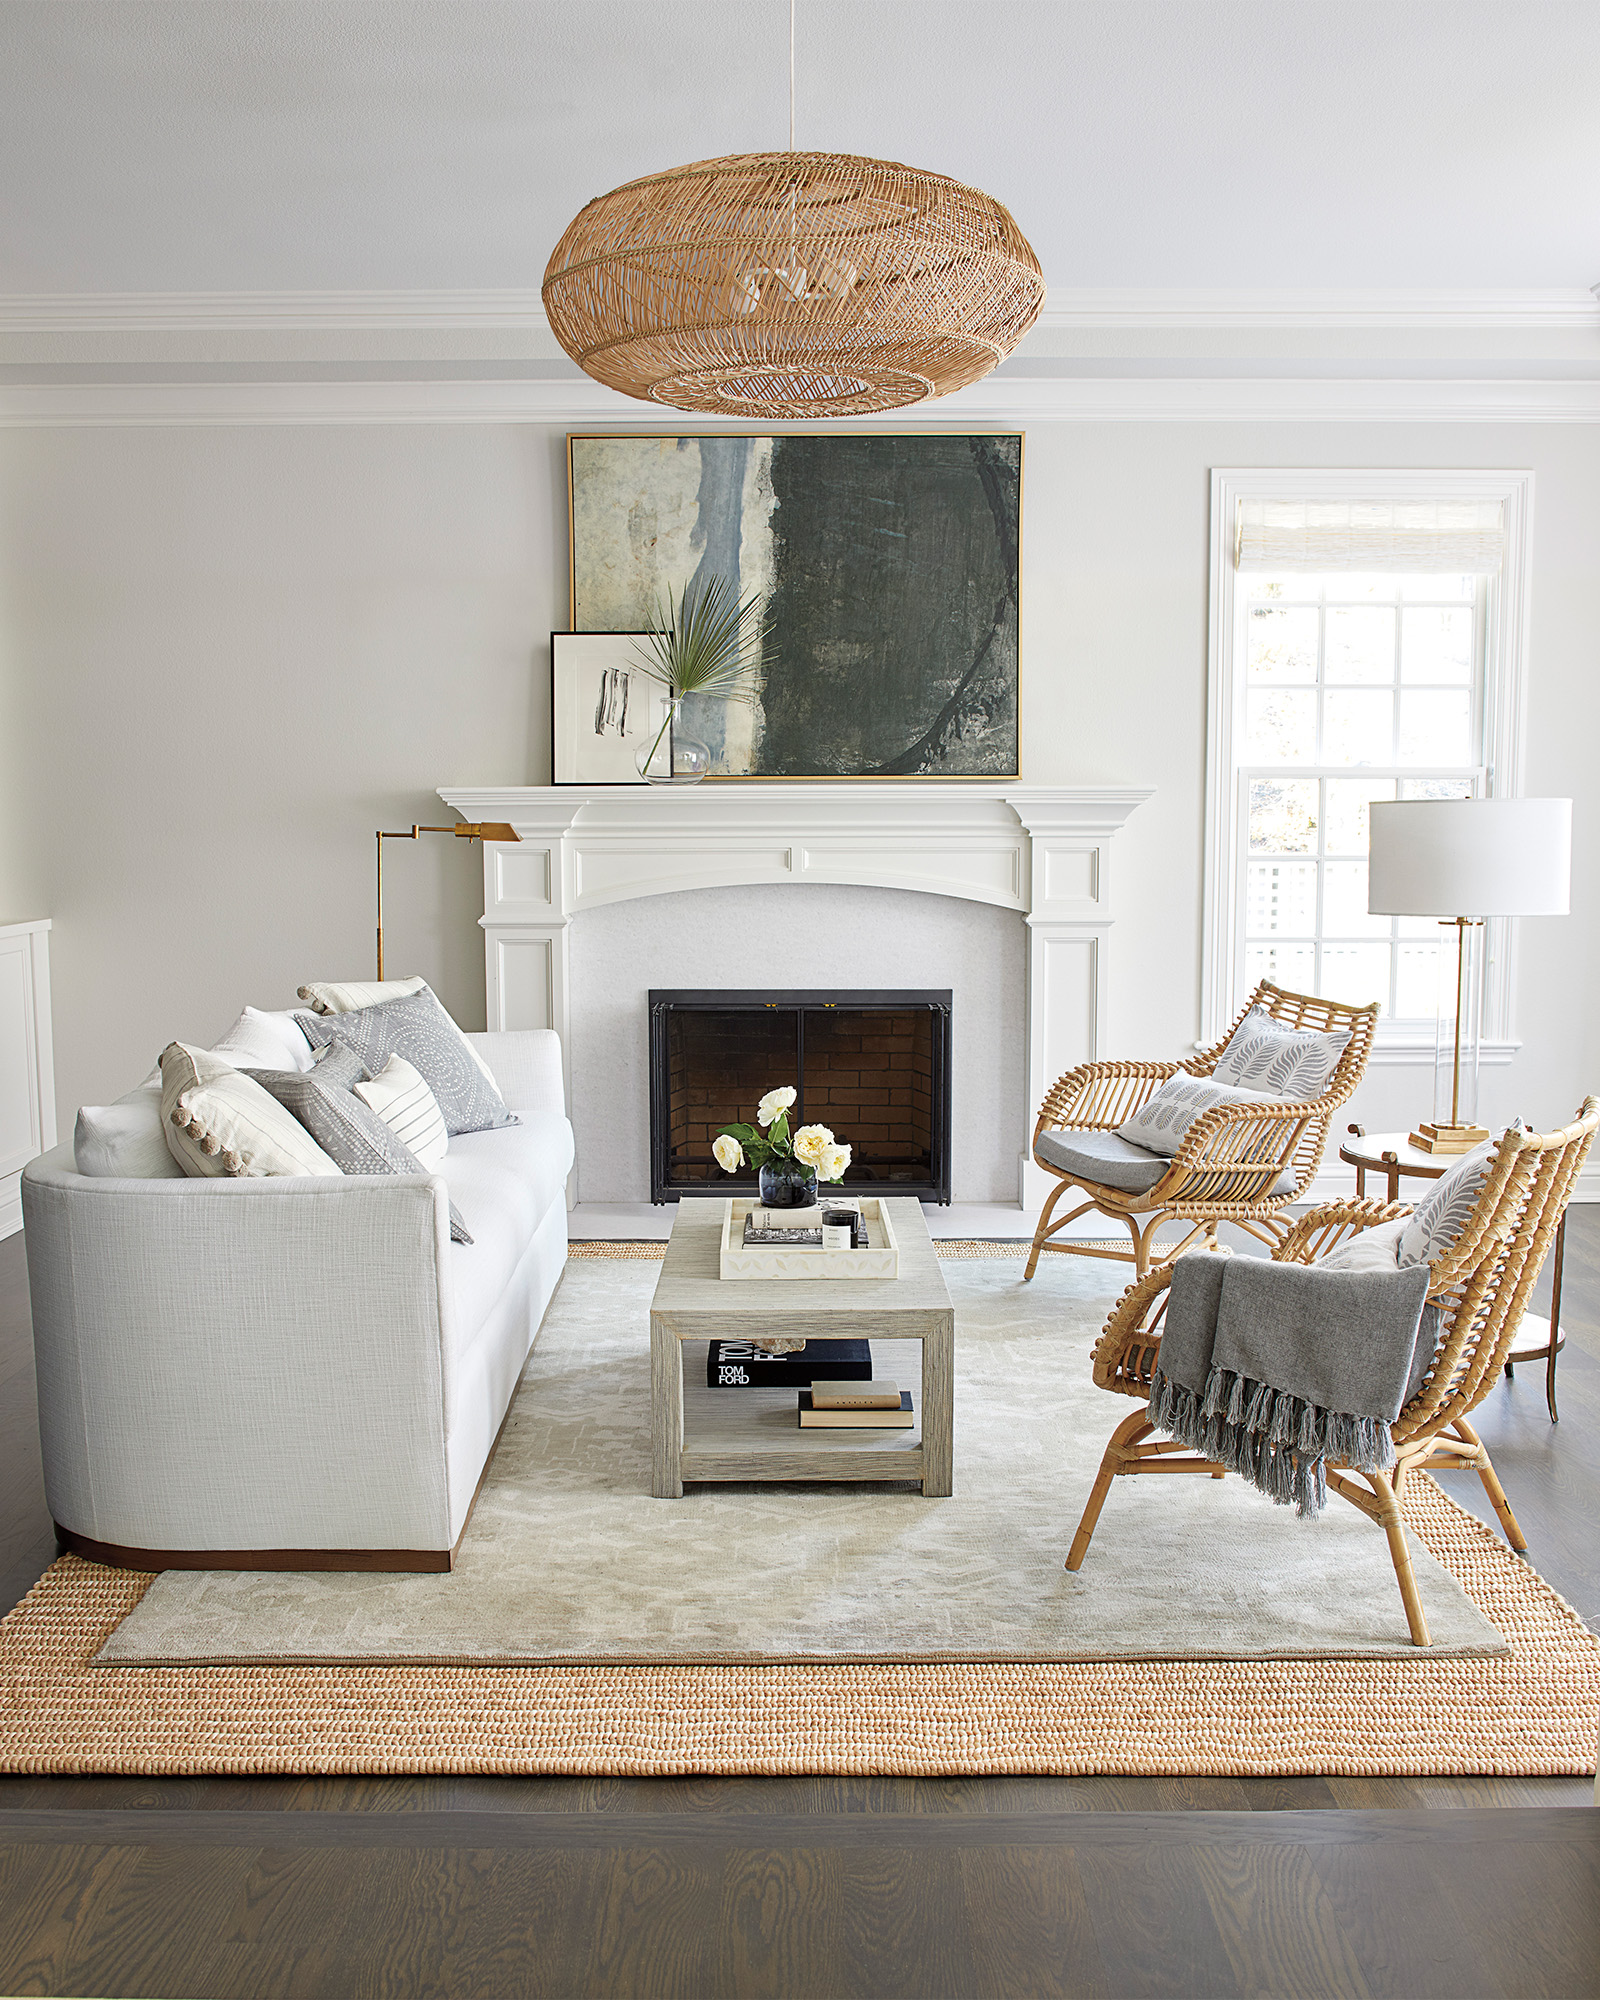 White, chic, and breezy serene coastal living room with Serena & Lily Parkwood Collection. Best of Late Summer 2019 on Hello Lovely...in case you're in the mood for decor inspiration.